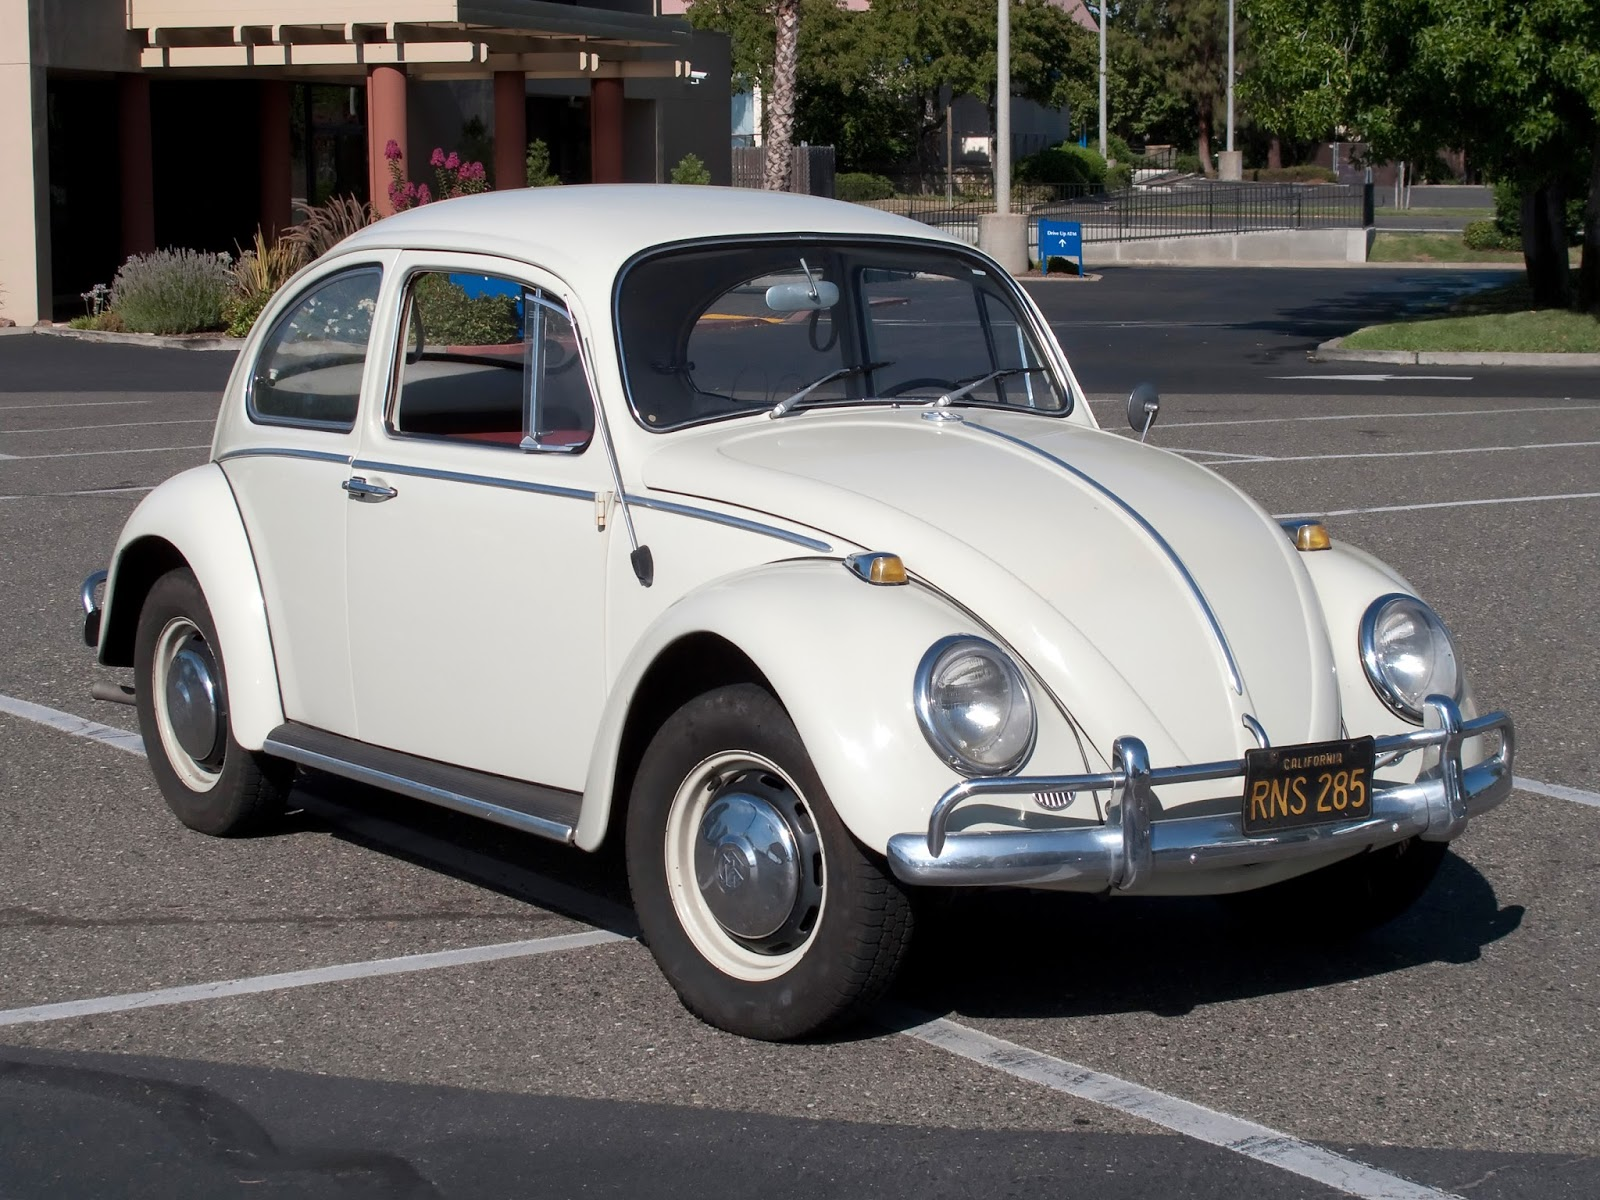 Mail4Rosey Punch Buggy No Punch Backs